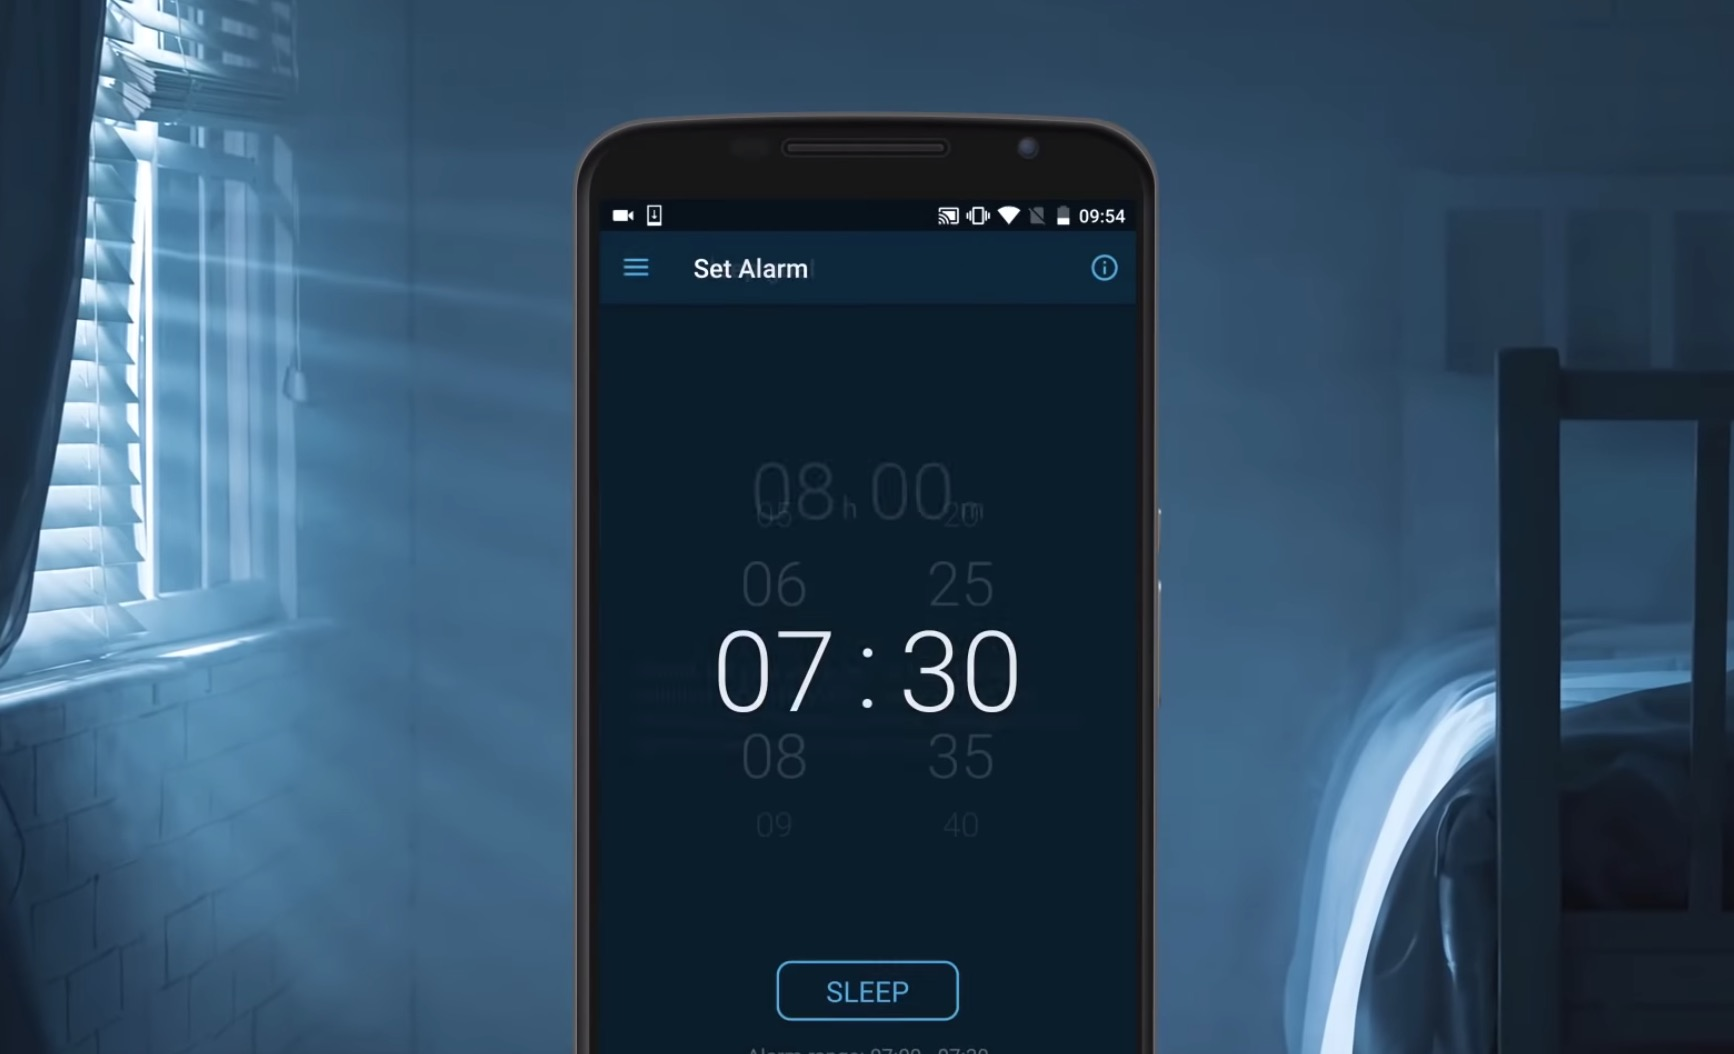 Best Android Alarm Clock 2020 Best Alarm Clock Apps for Android in 2019